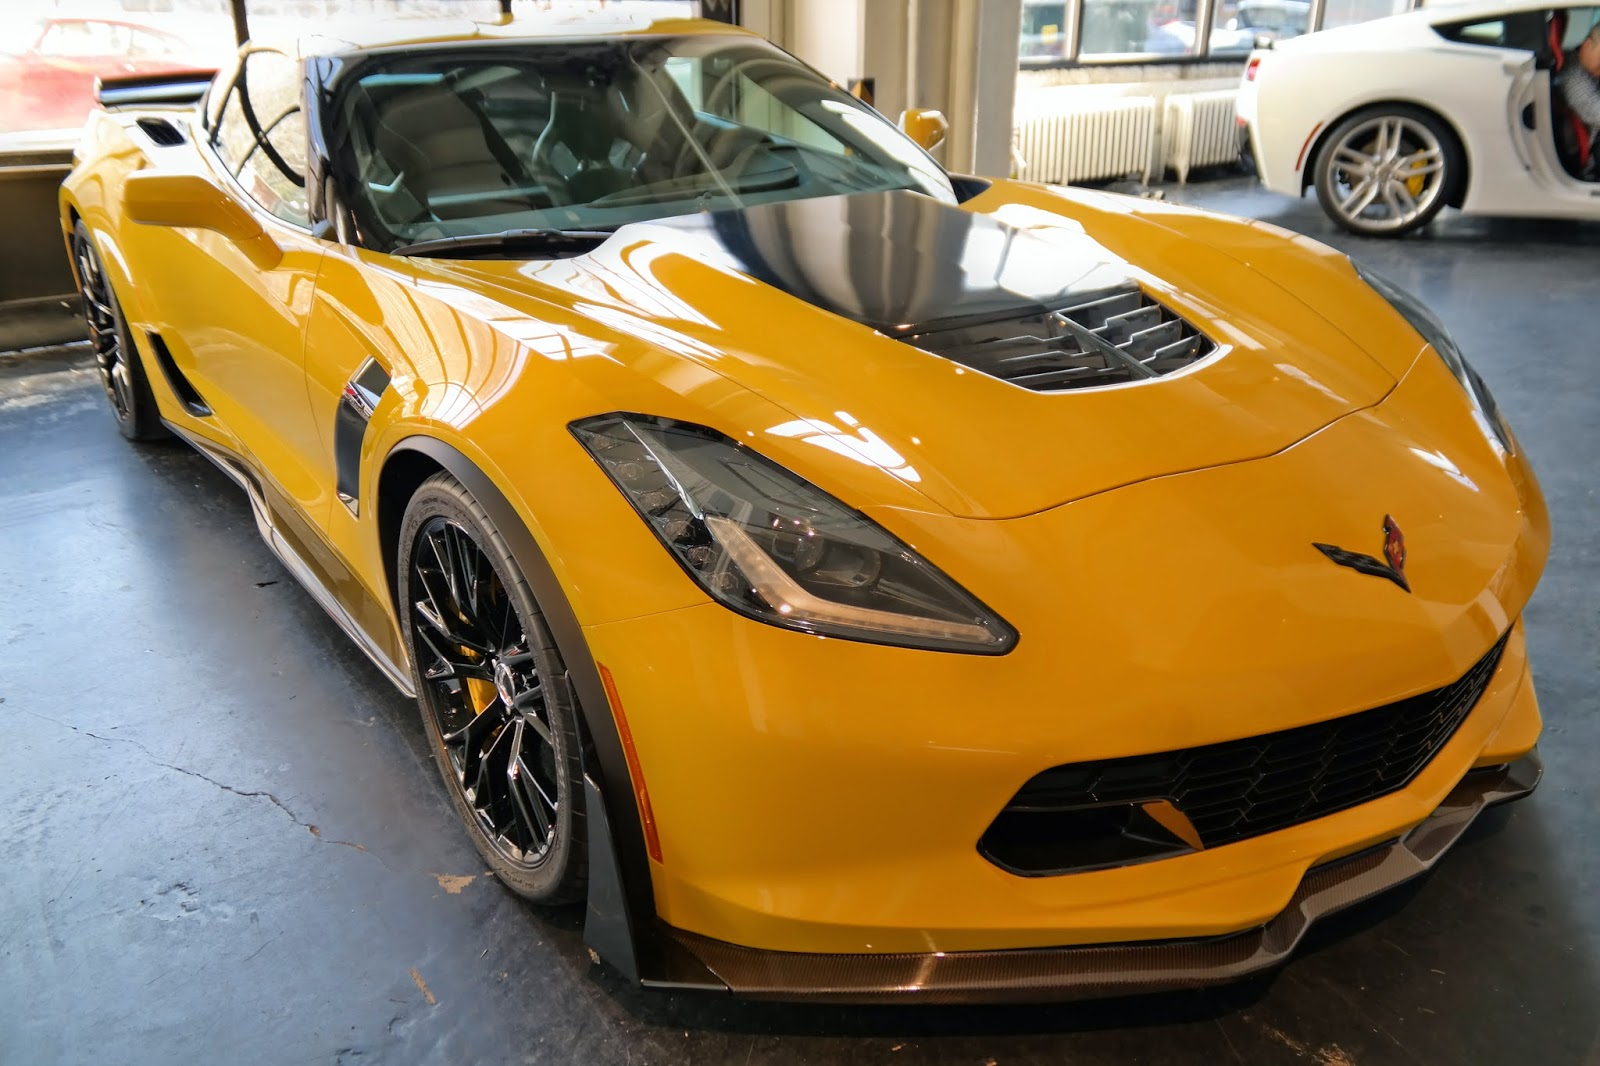 corvette c7 z06 up close and personal look at the stunning details. Black Bedroom Furniture Sets. Home Design Ideas